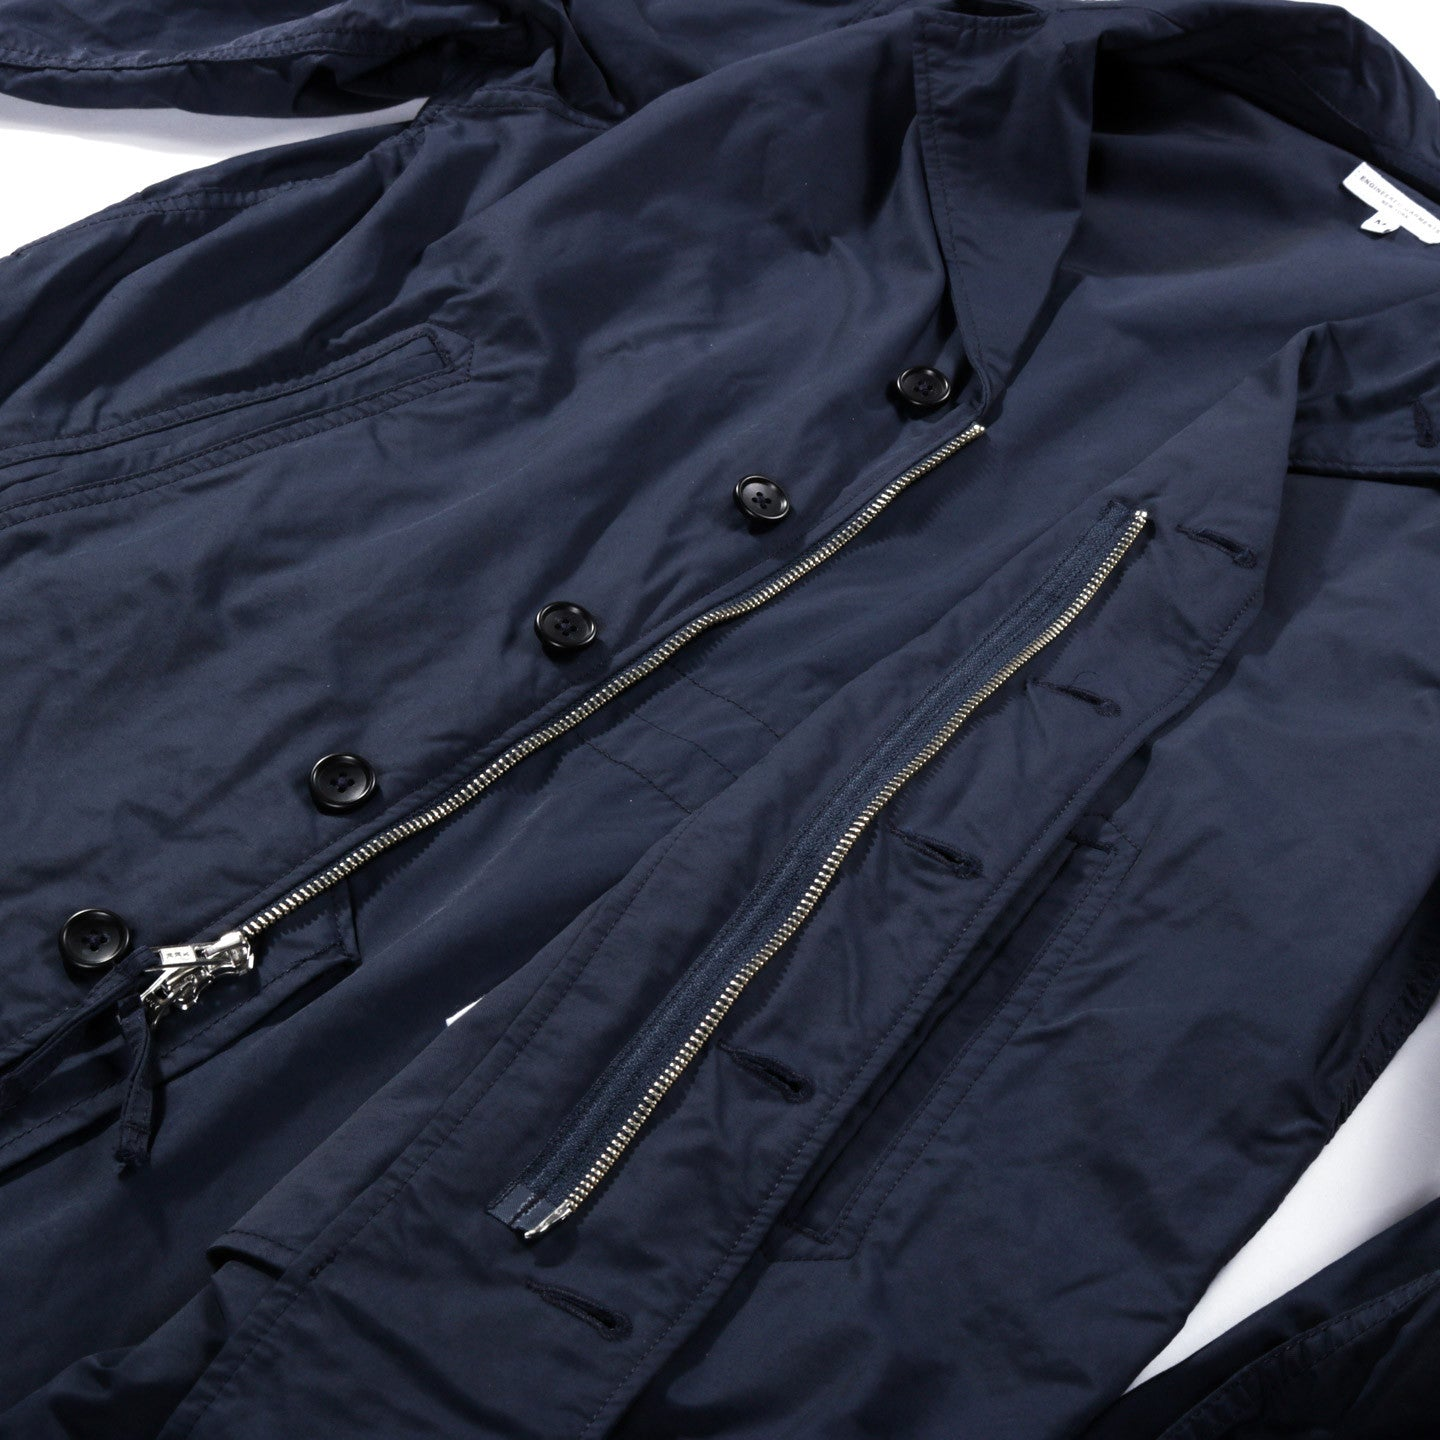 ENGINEERED GARMENTS 41 DUSTER DARK NAVY NYCO TWILL